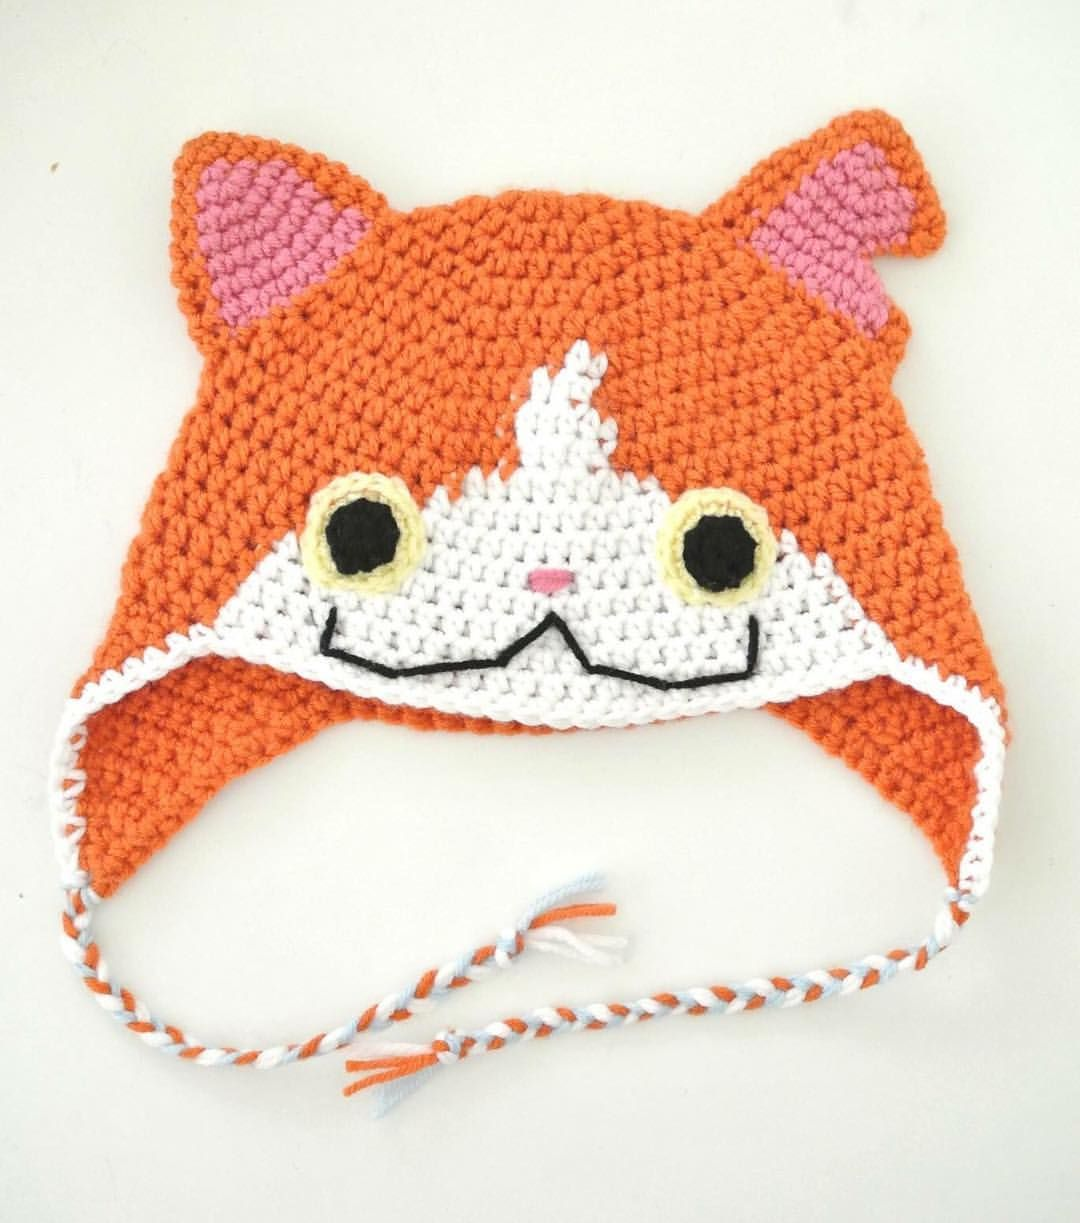 Crocheted Jibanyan hat from Yokai Watch | Crochet | Pinterest ...